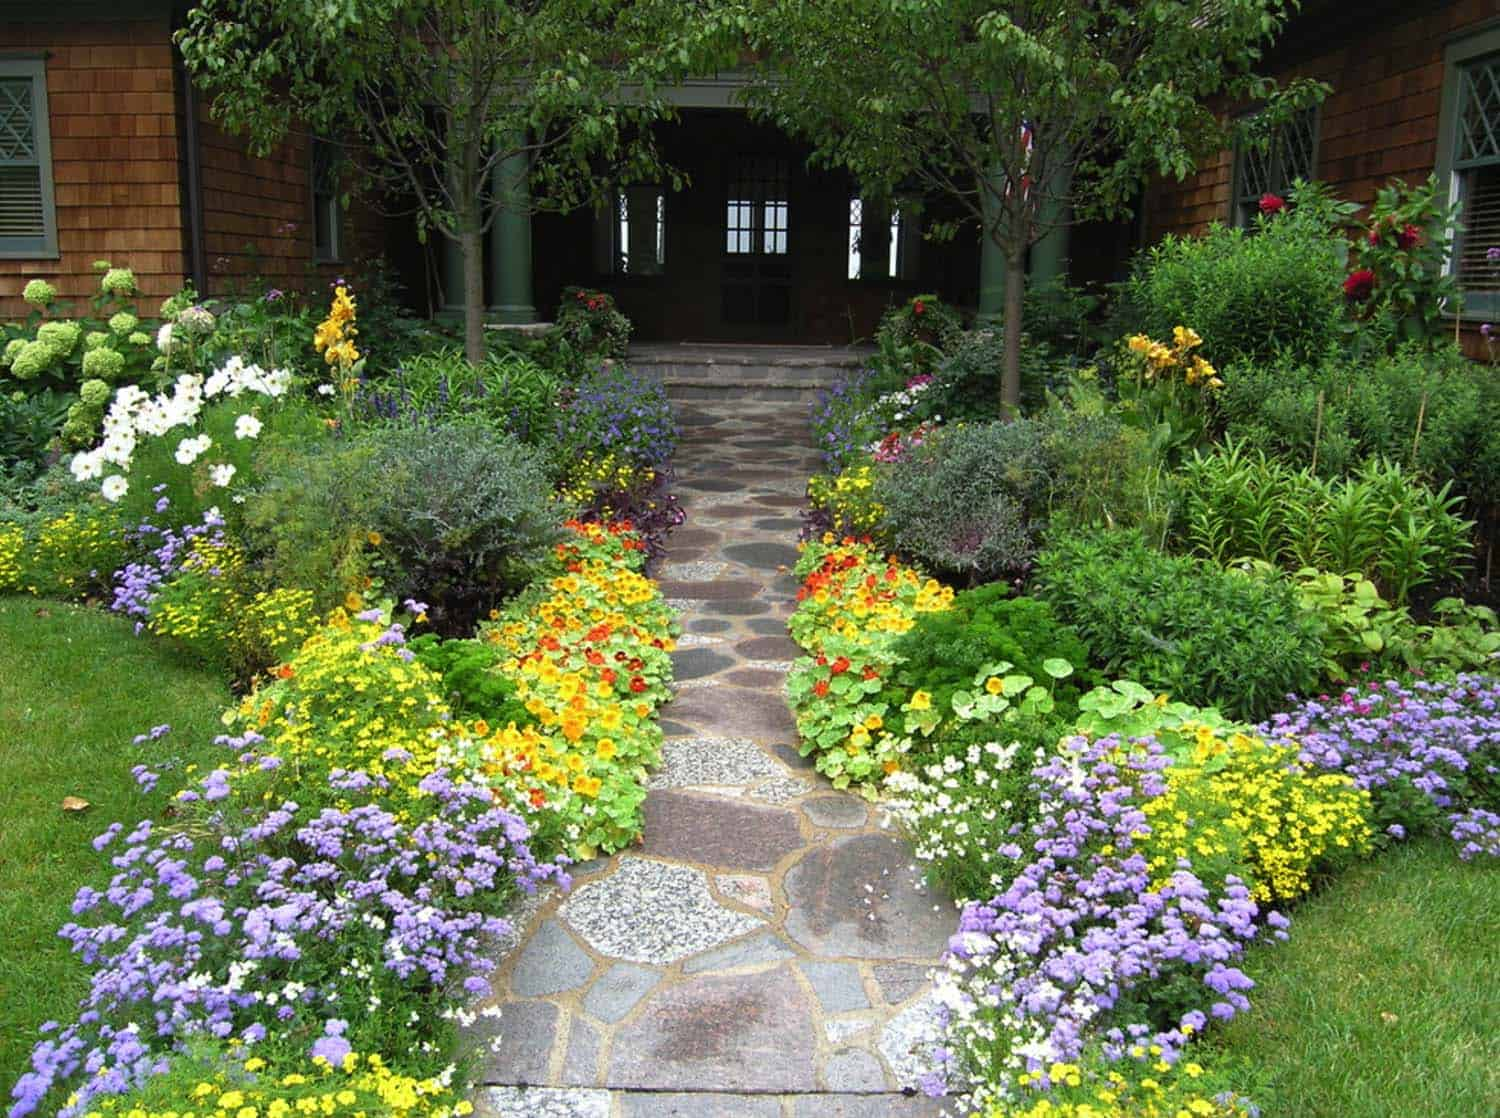 Garden Stone Pathway Ideas-17-1 Kindesign